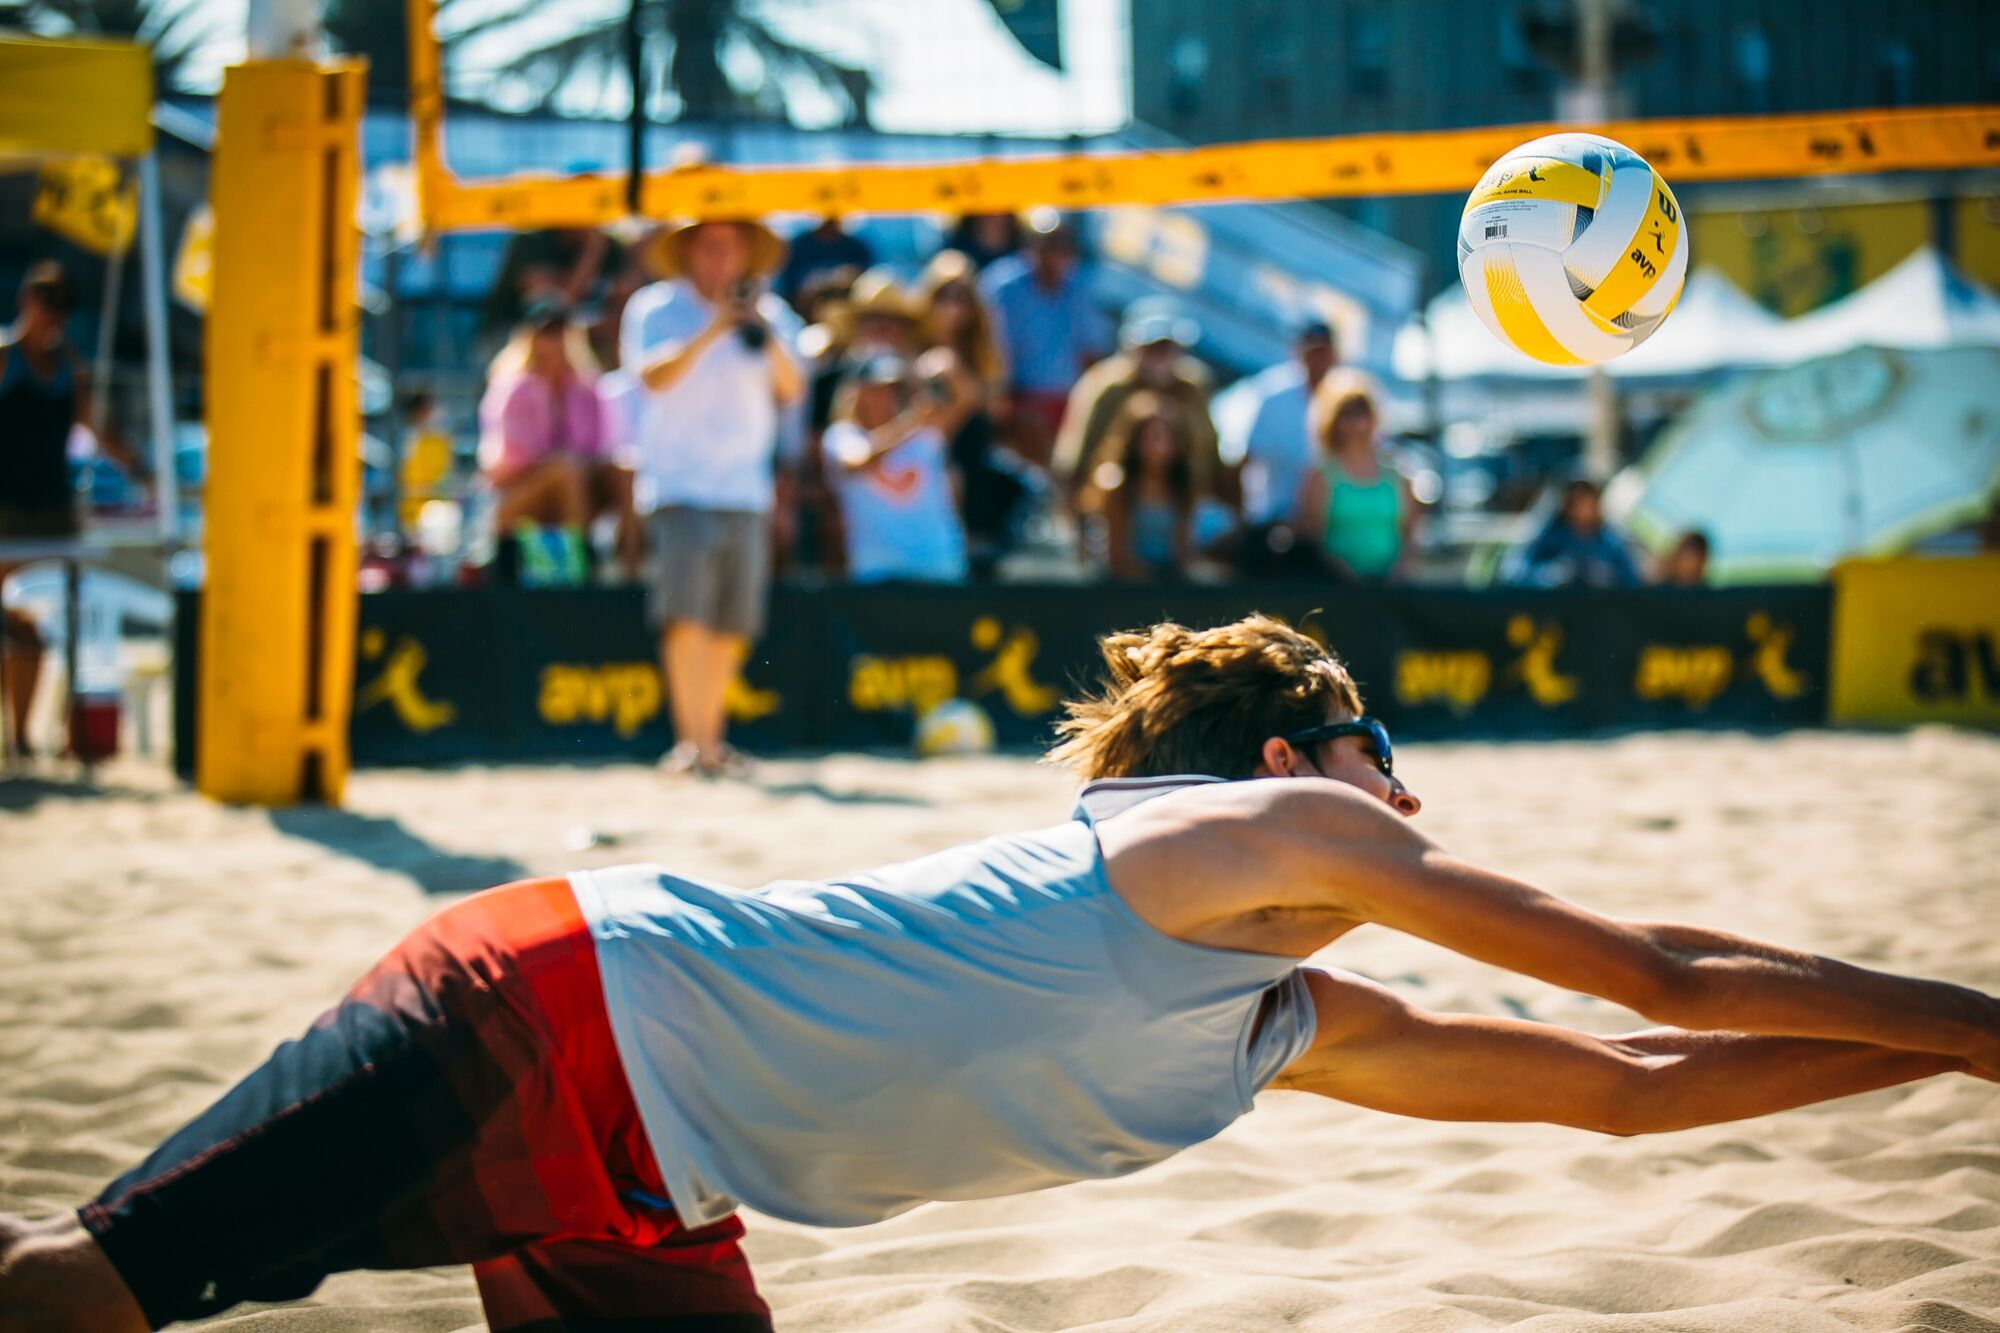 Hermosa Beach May Border Manhattan Beach Geographically But There Is No Doubt That Each City Has Its Own Identity Hermosa Beach Beach Events Beach Volleyball